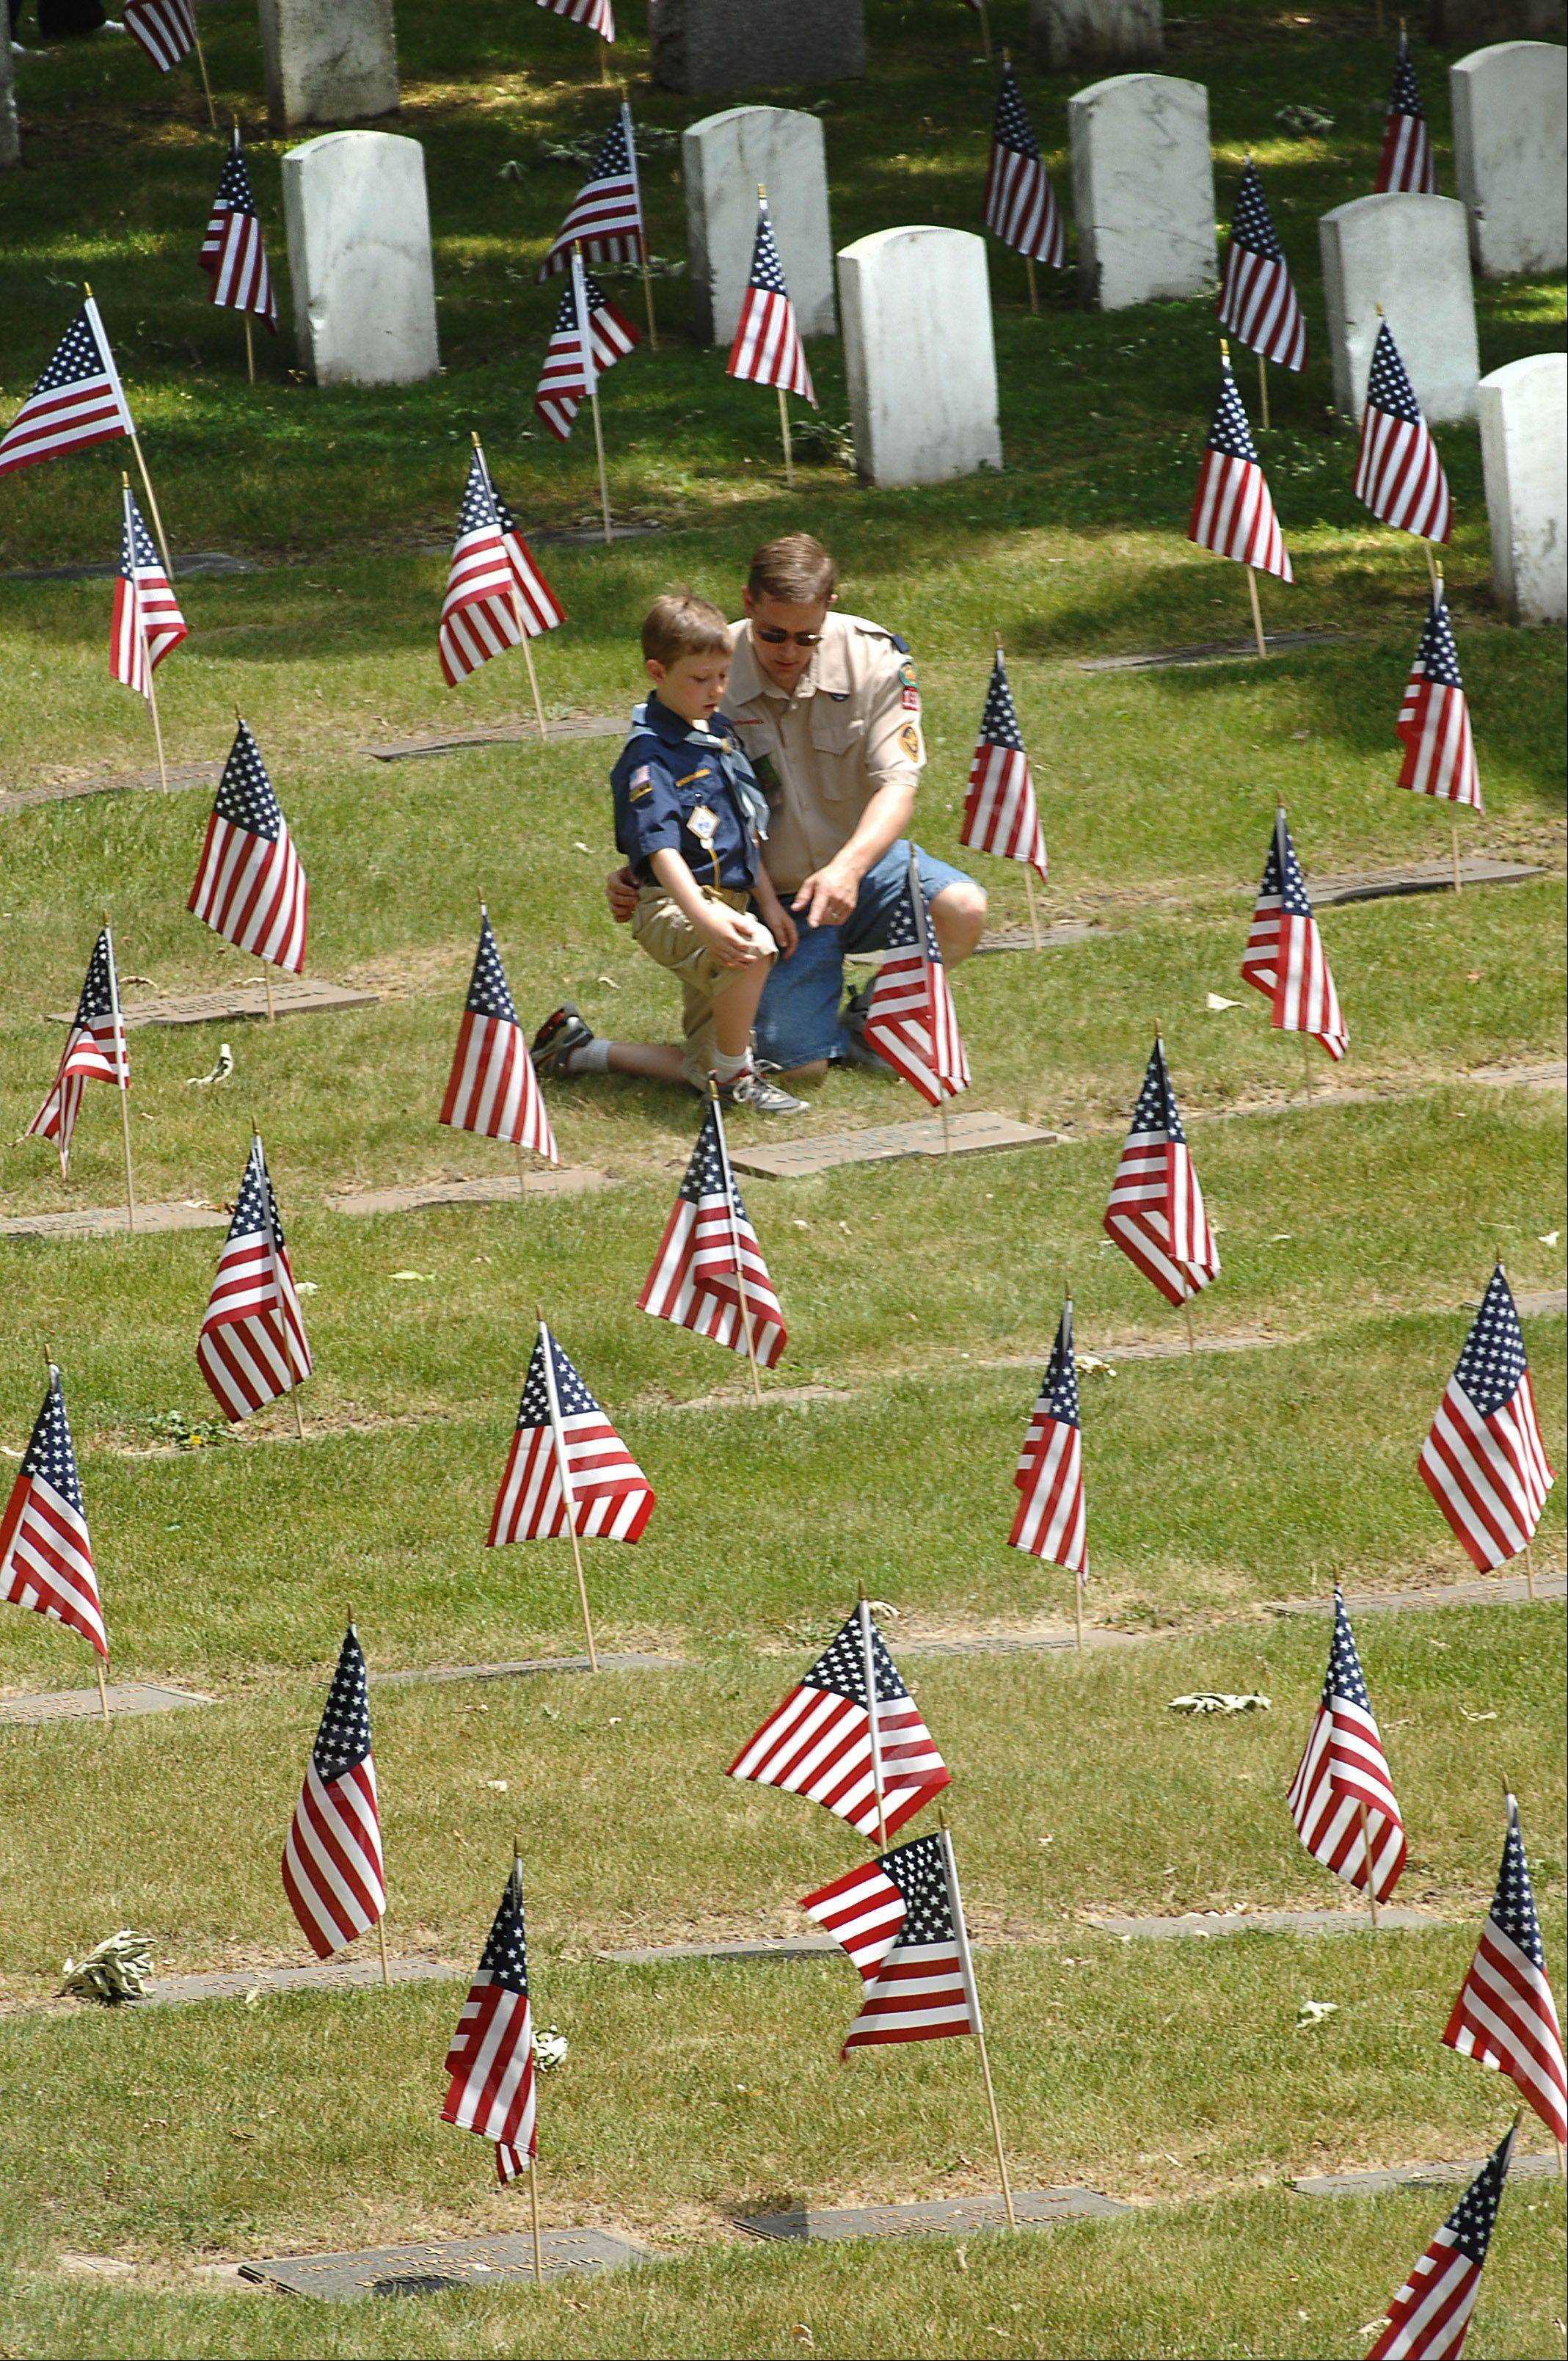 Cub Scout Collin Hagen, 8, and his father Jerry of South Elgin spend time with soldiers graves in the Bluff City Cemetery following the Memorial Day ceremony in Elgin Monday.